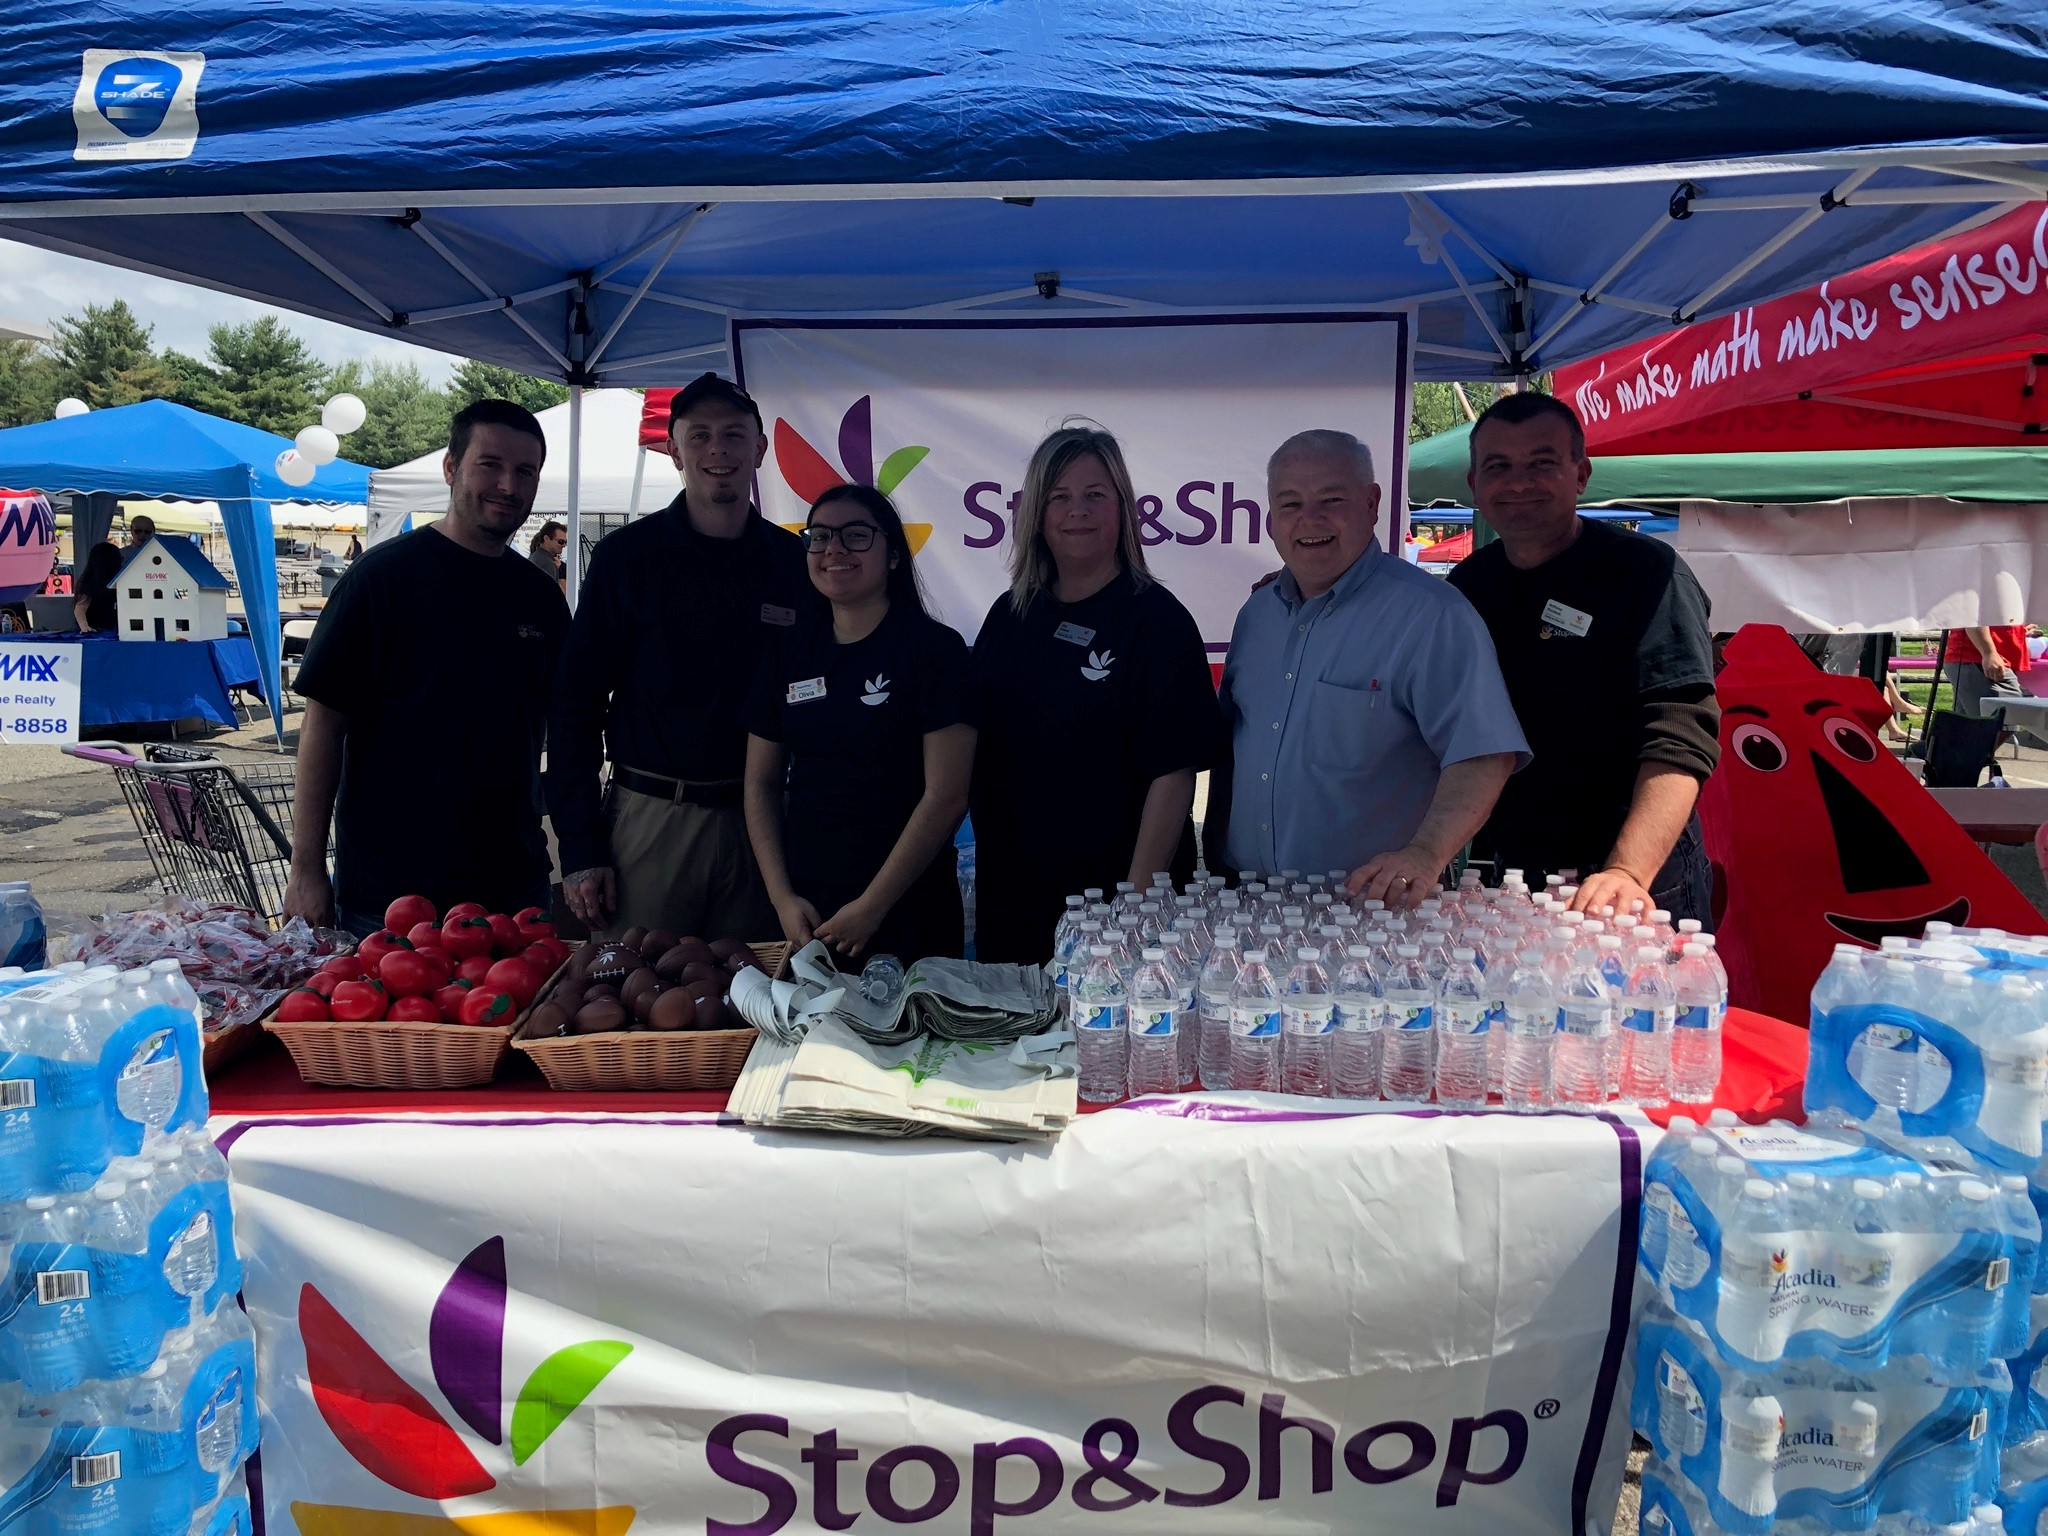 Another Great Event In The Community -75th Annual Wyckoff Day. We Saw Thousands Of Members Of The Community And Handed Out Thousands Of Bottles Of Water On This Hot Day!